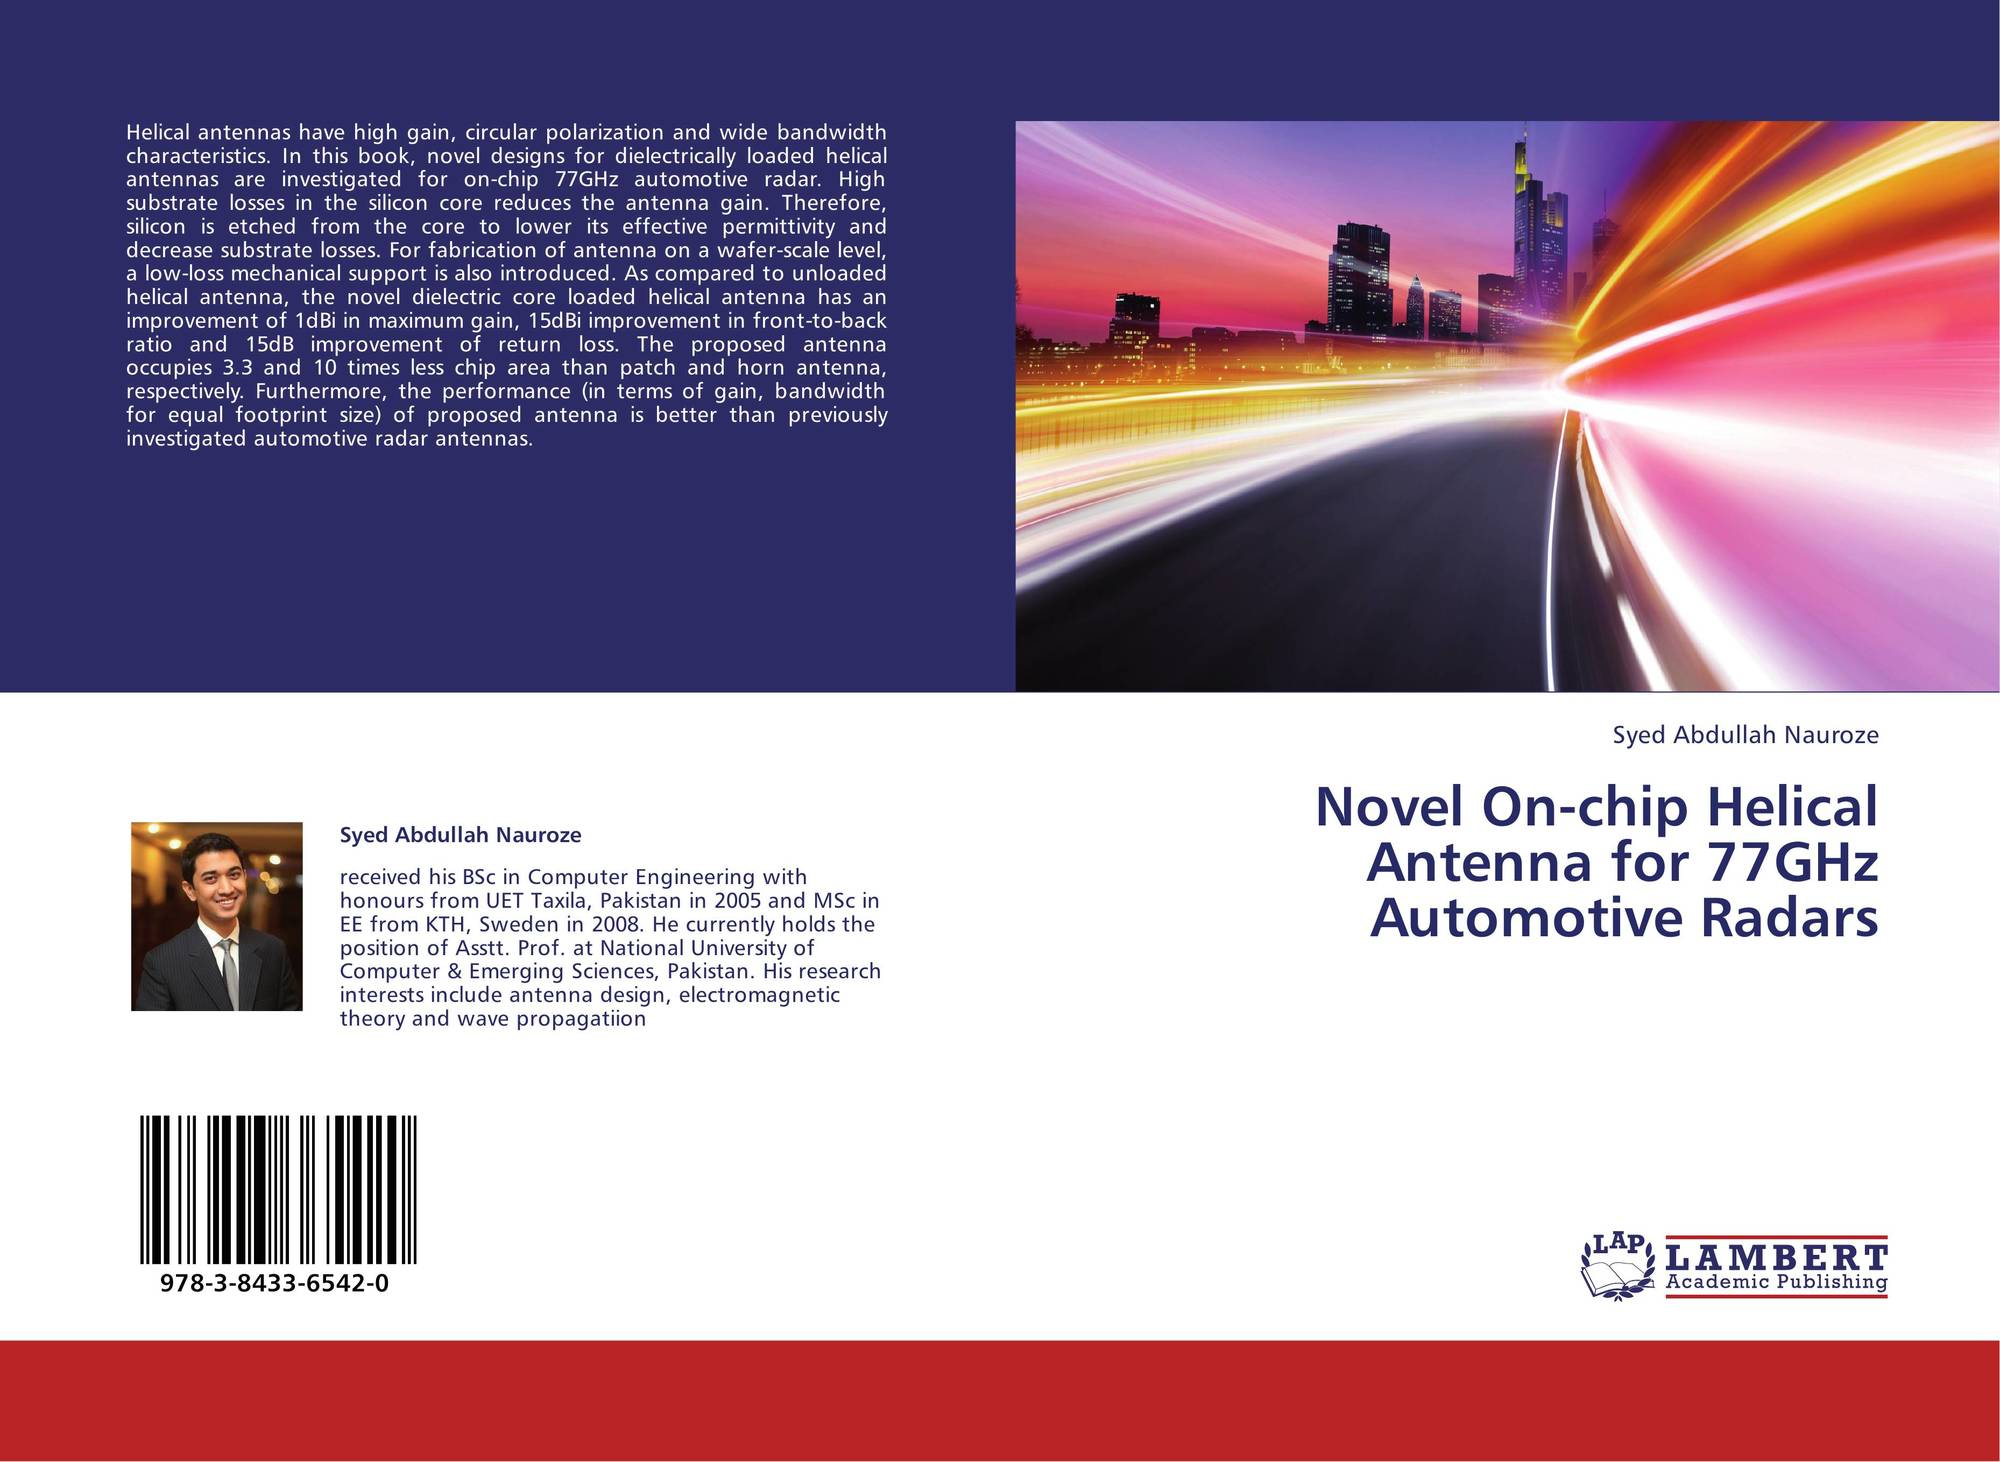 Novel On-chip Helical Antenna for 77GHz Automotive Radars